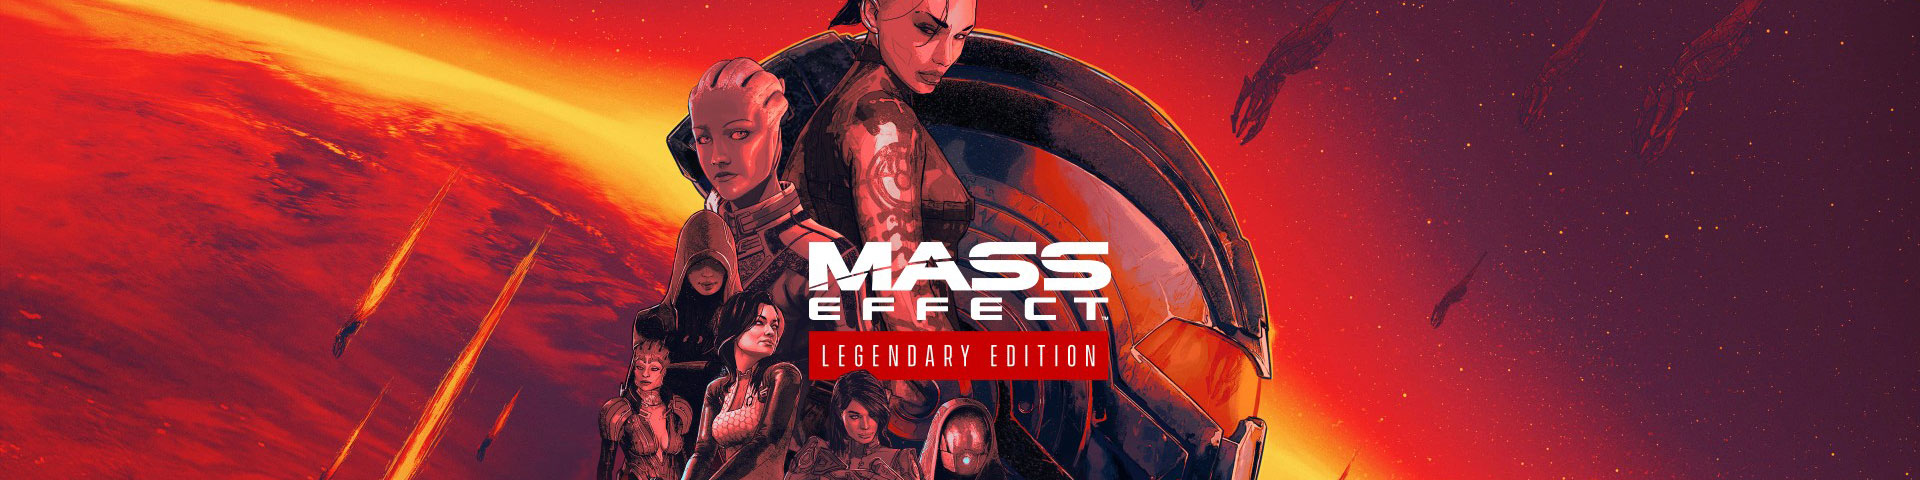 A number of female characters from mass affect appear against a red background